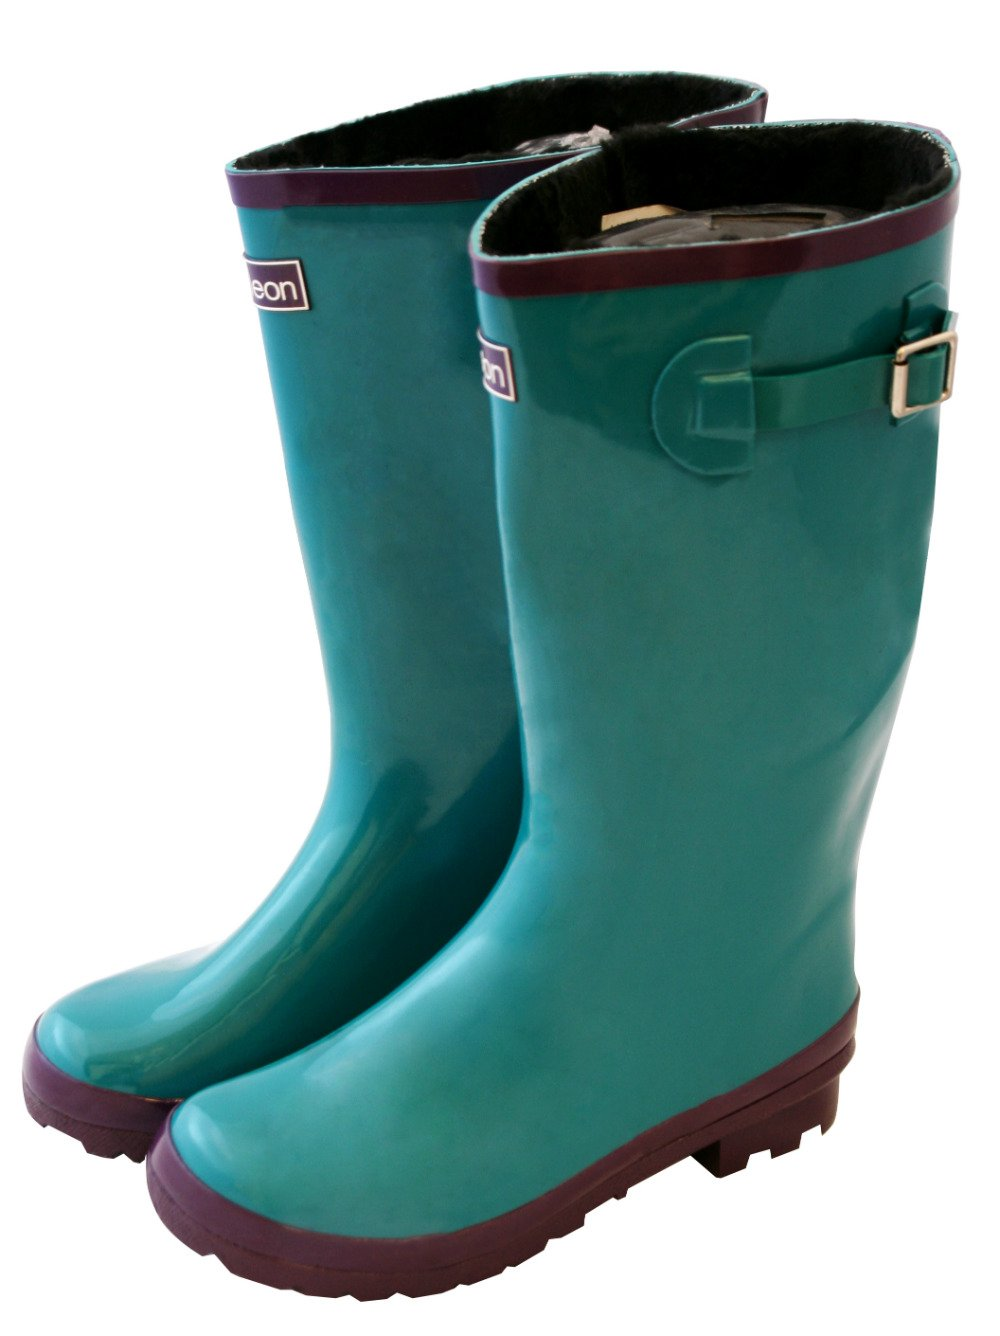 Jileon Wide Calf All Weather Durable Rubber Rain Boots for Women-Fits Calf Sizes up to 18 inches B00SLMCV60 7 W (Wide) US|Glossy Teal Blue